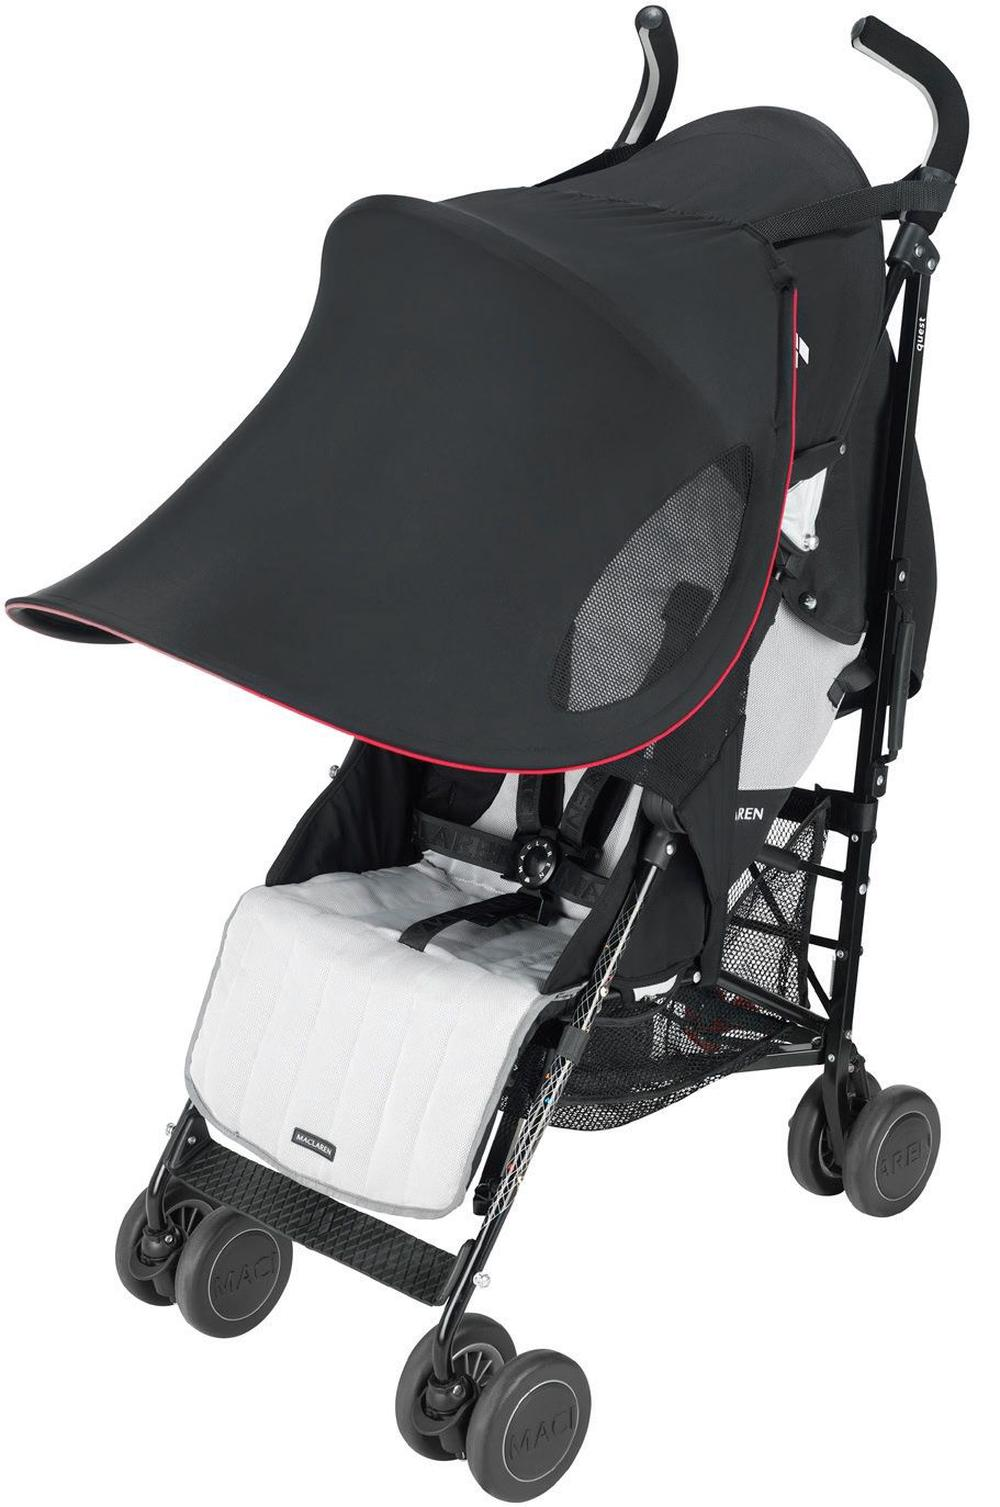 Baby Strollers Maclaren Maclaren Stroller Sun Shades Buy Online At The Nile